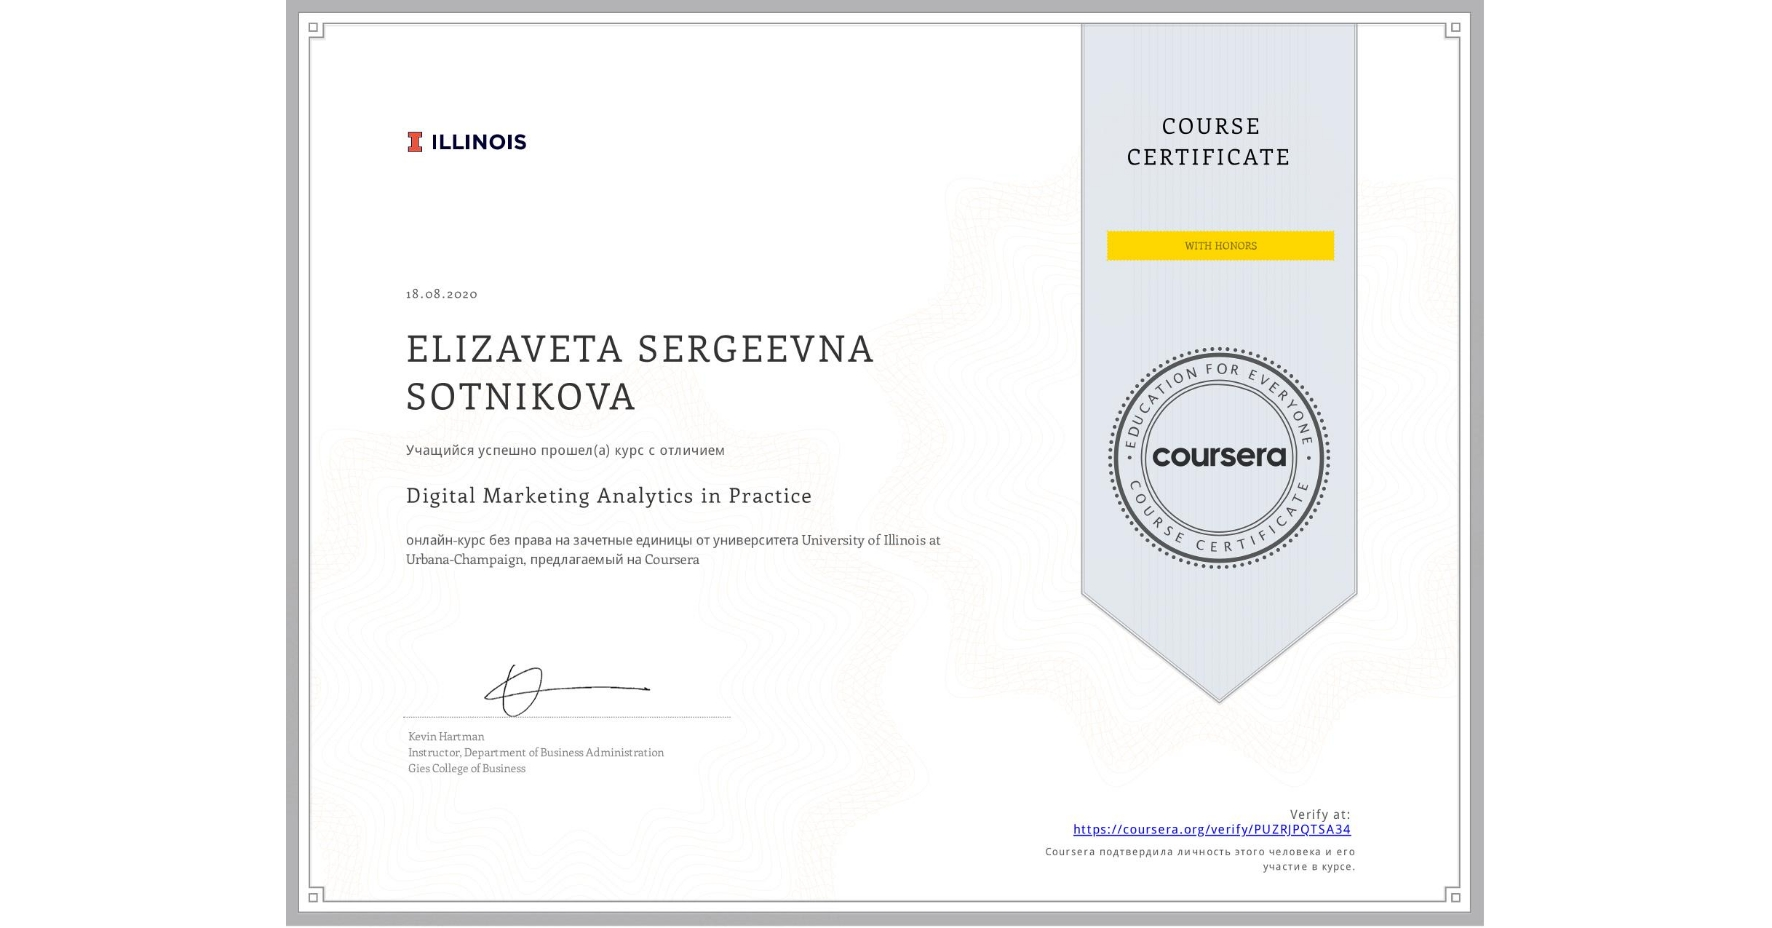 View certificate for ELIZAVETA SERGEEVNA  SOTNIKOVA, Digital Marketing Analytics in Practice, an online non-credit course authorized by University of Illinois at Urbana-Champaign and offered through Coursera